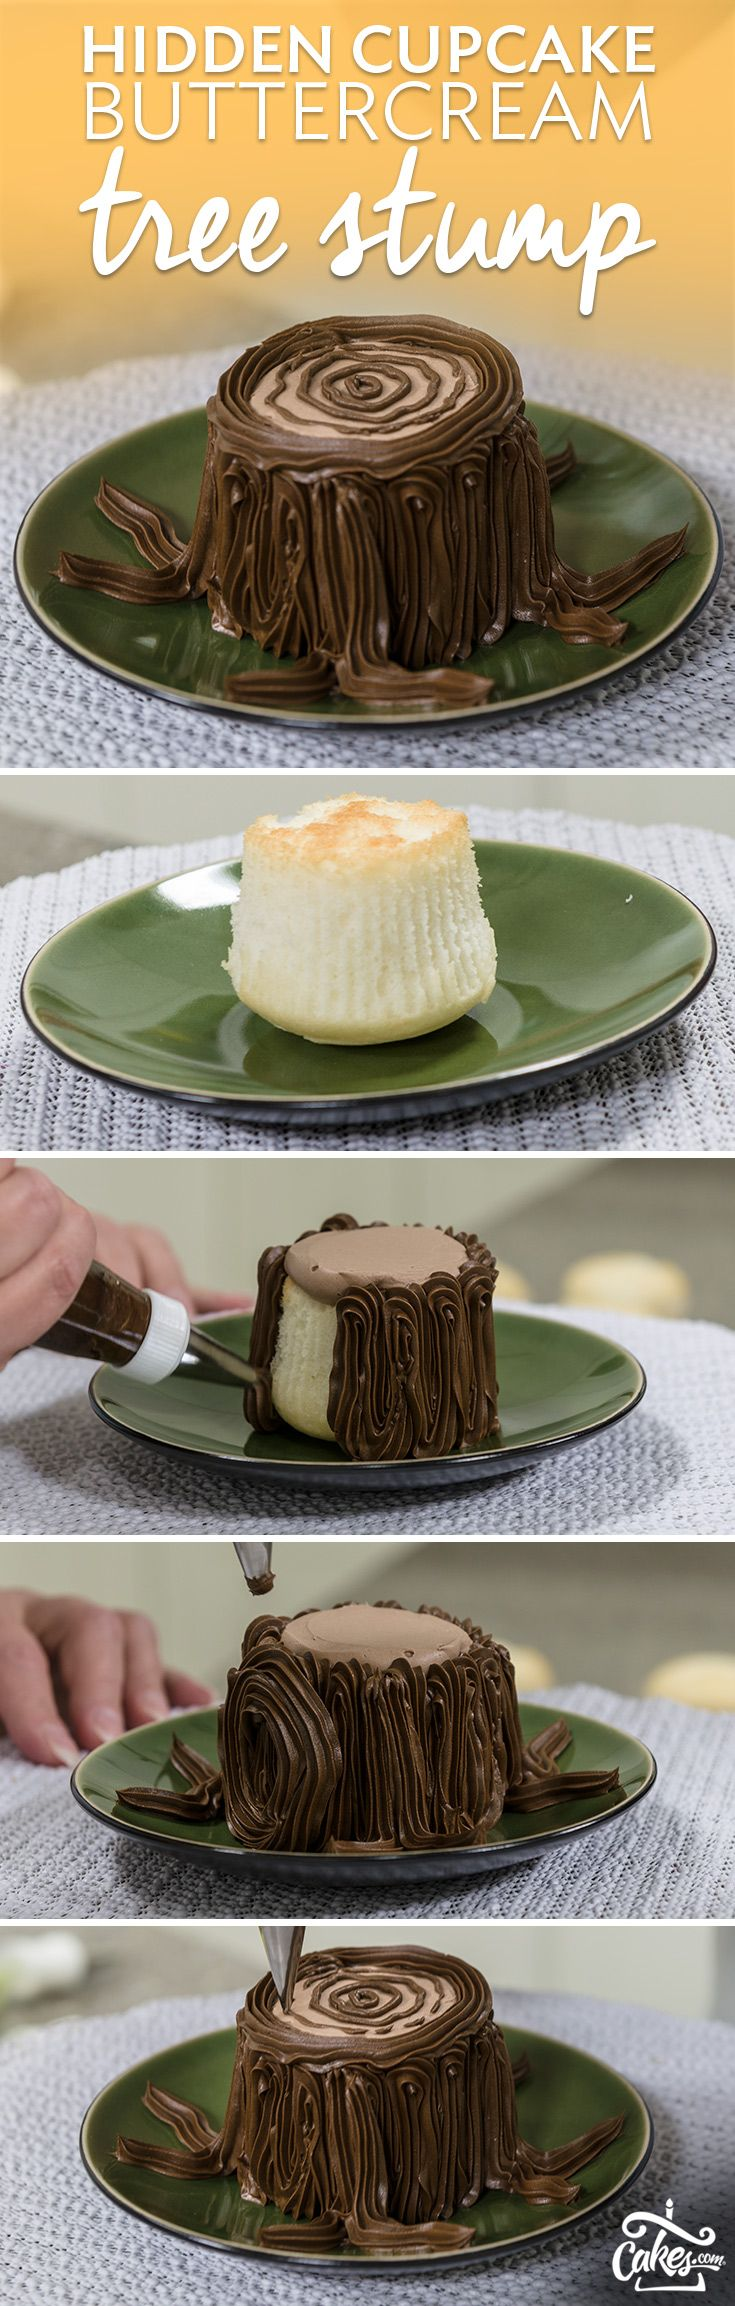 Surprise - there's a cupcake hidden inside this buttercream treat stump.